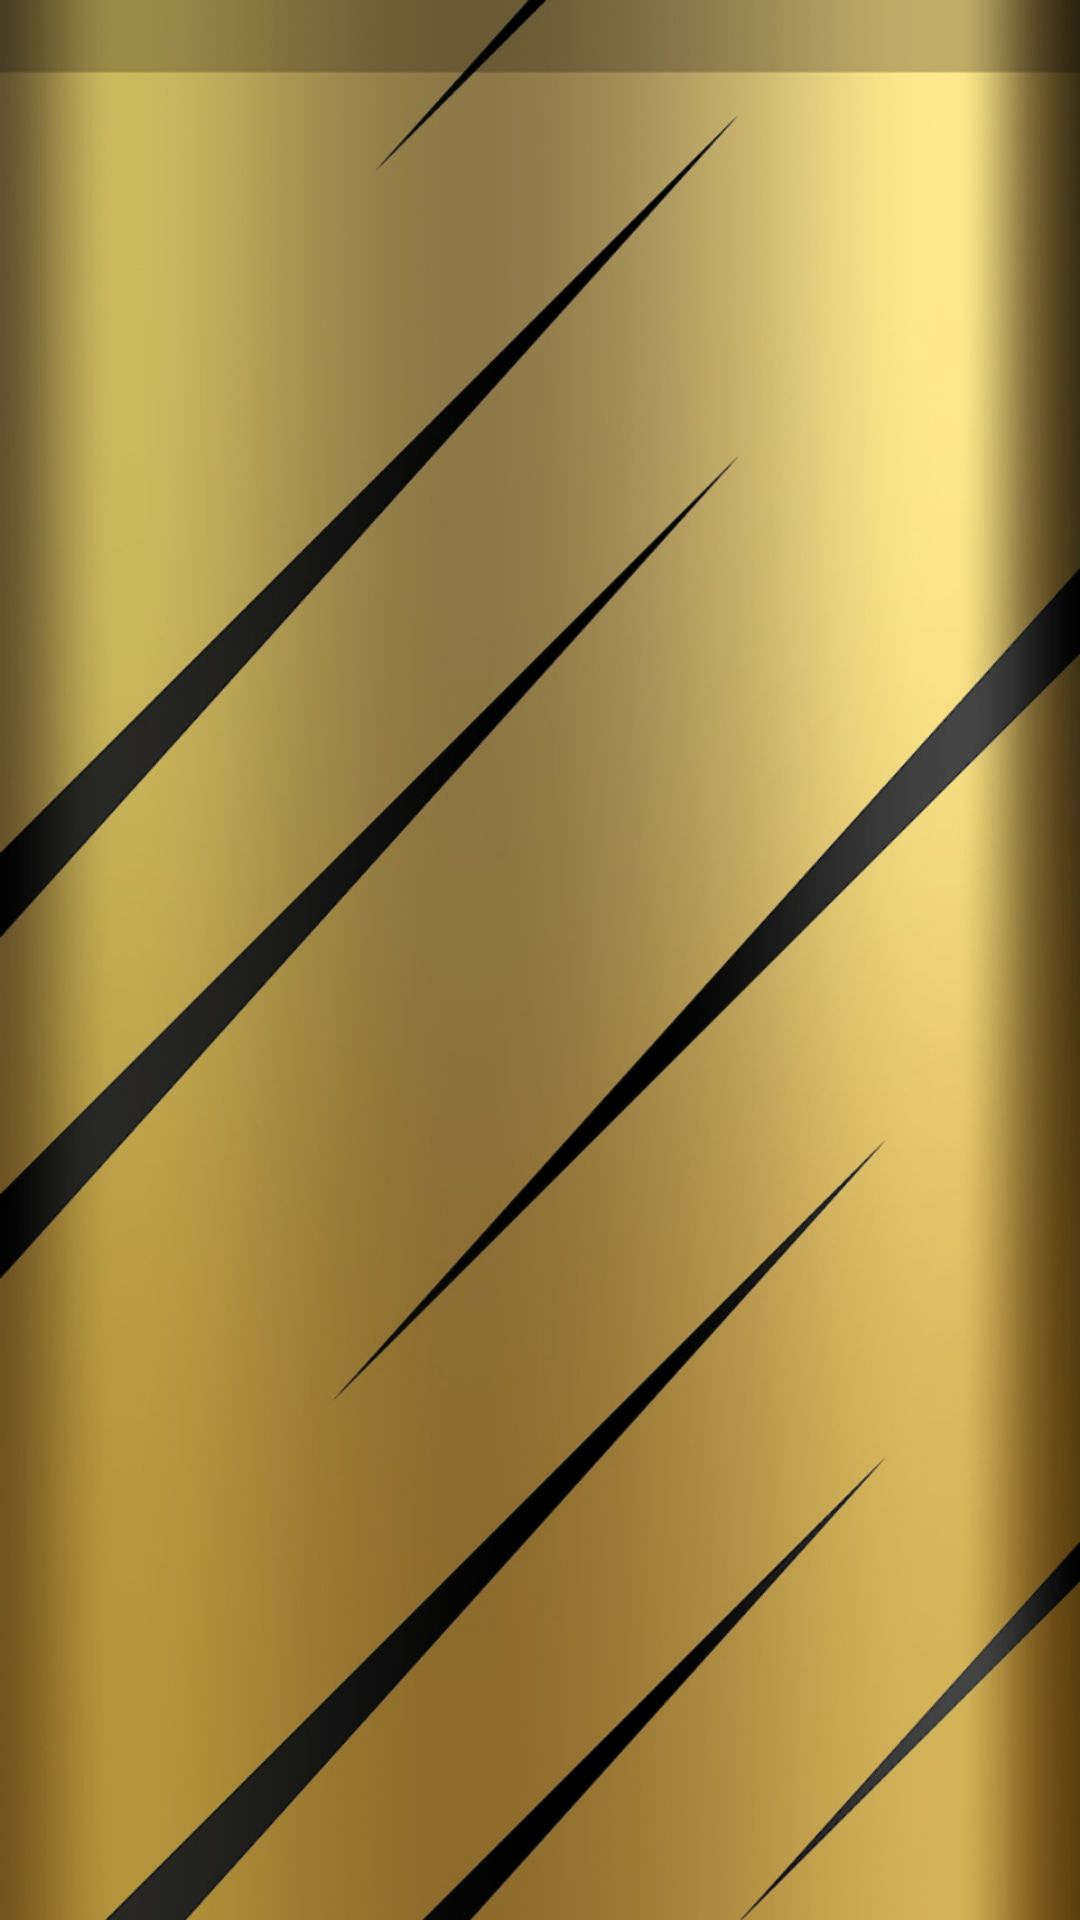 Abstract Wallpaper 11035954 Apple Iphone 7 Plus Hd Wallpapers Available For Free Download Gold Wallpaper Yellow Wallpaper Abstract Wallpaper